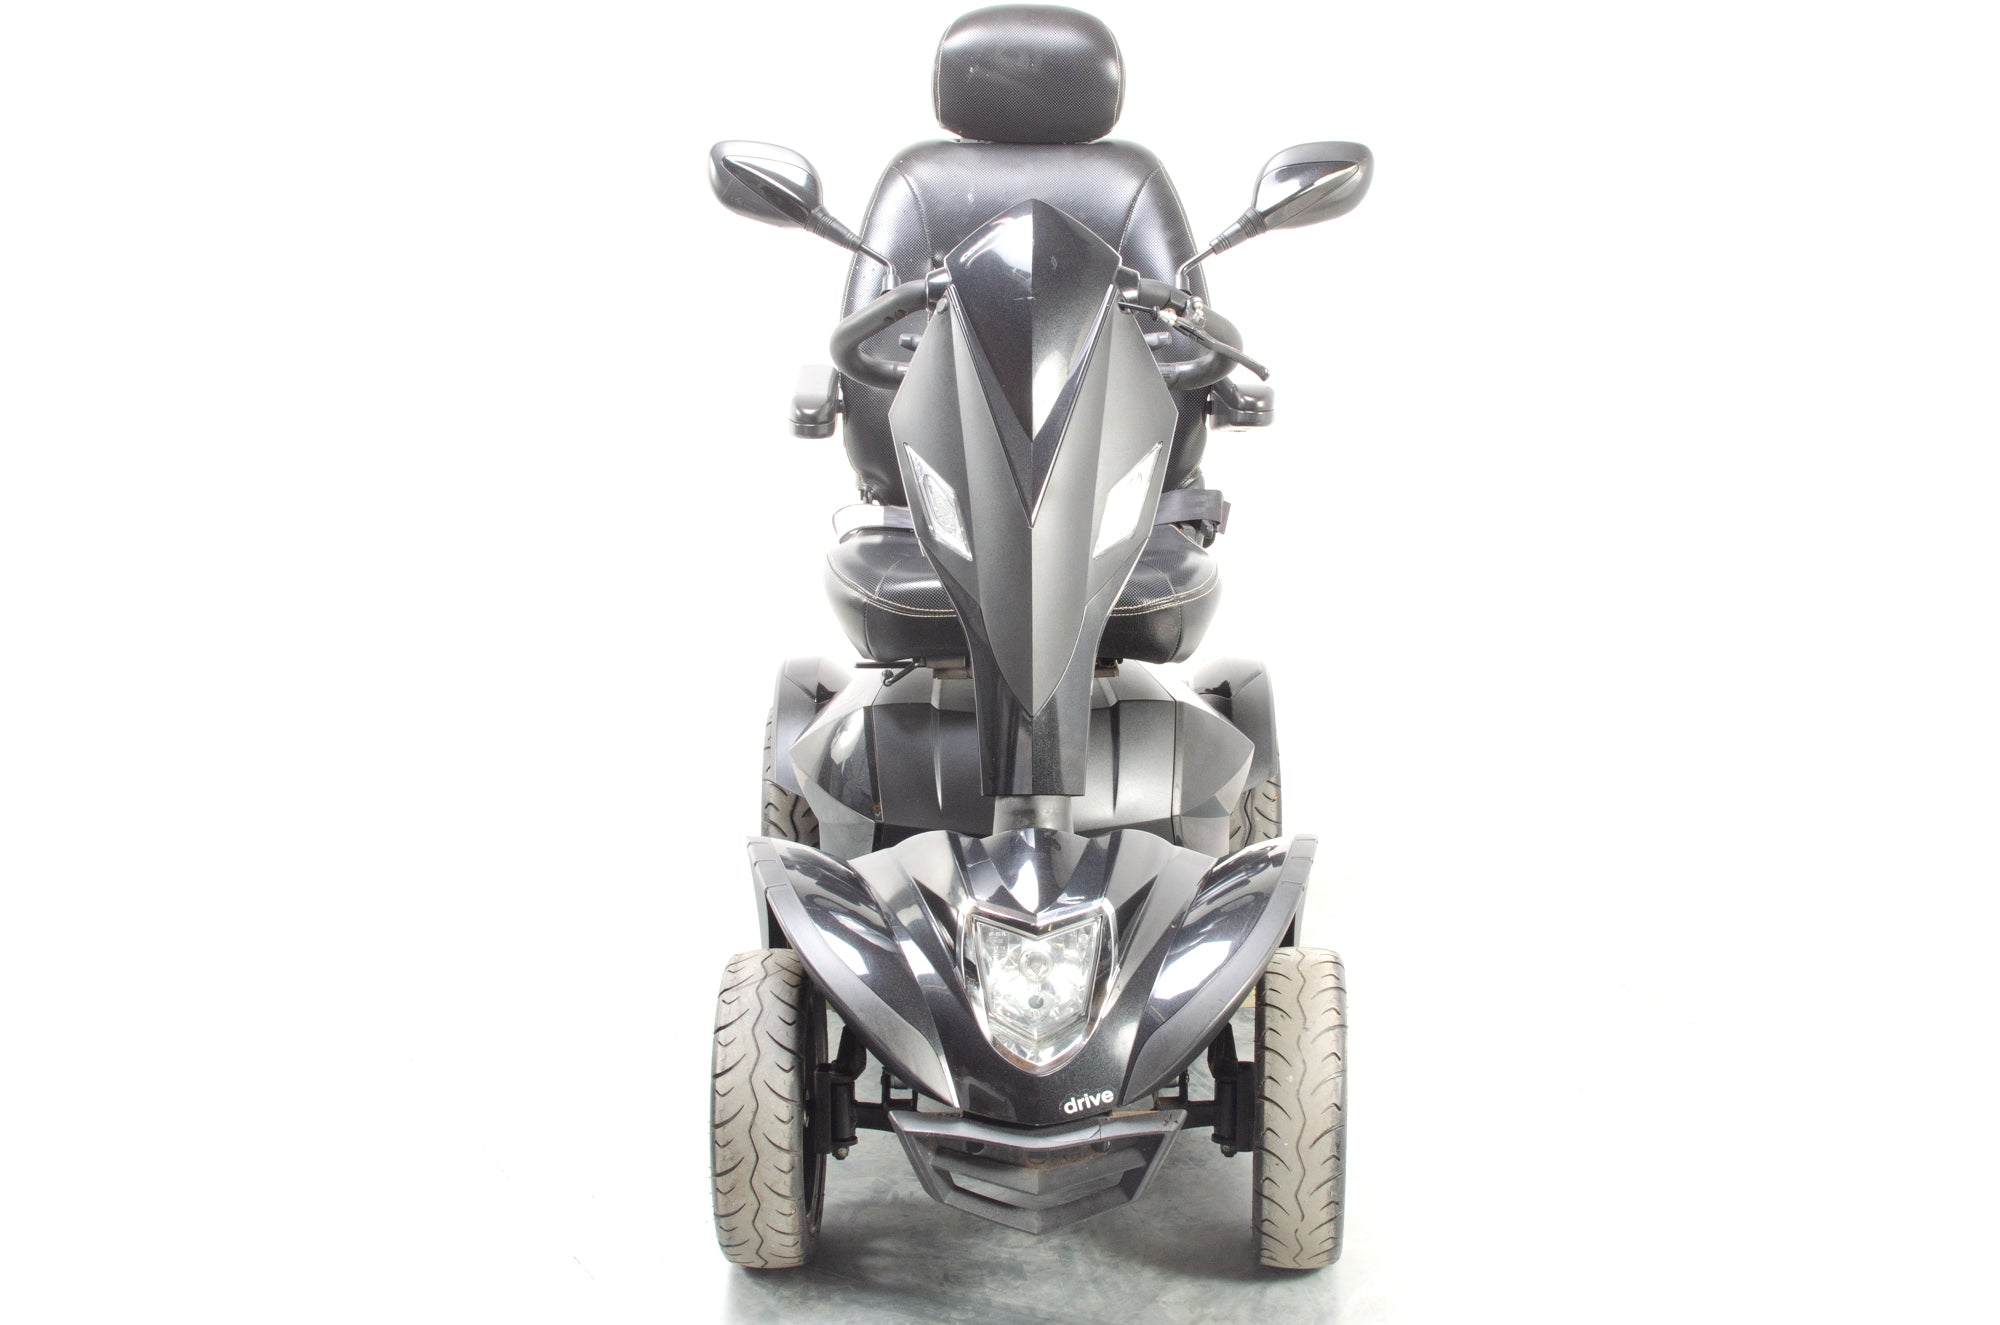 Drive Cobra Large All-Terrain Mobility Scooter 8mph Used Black